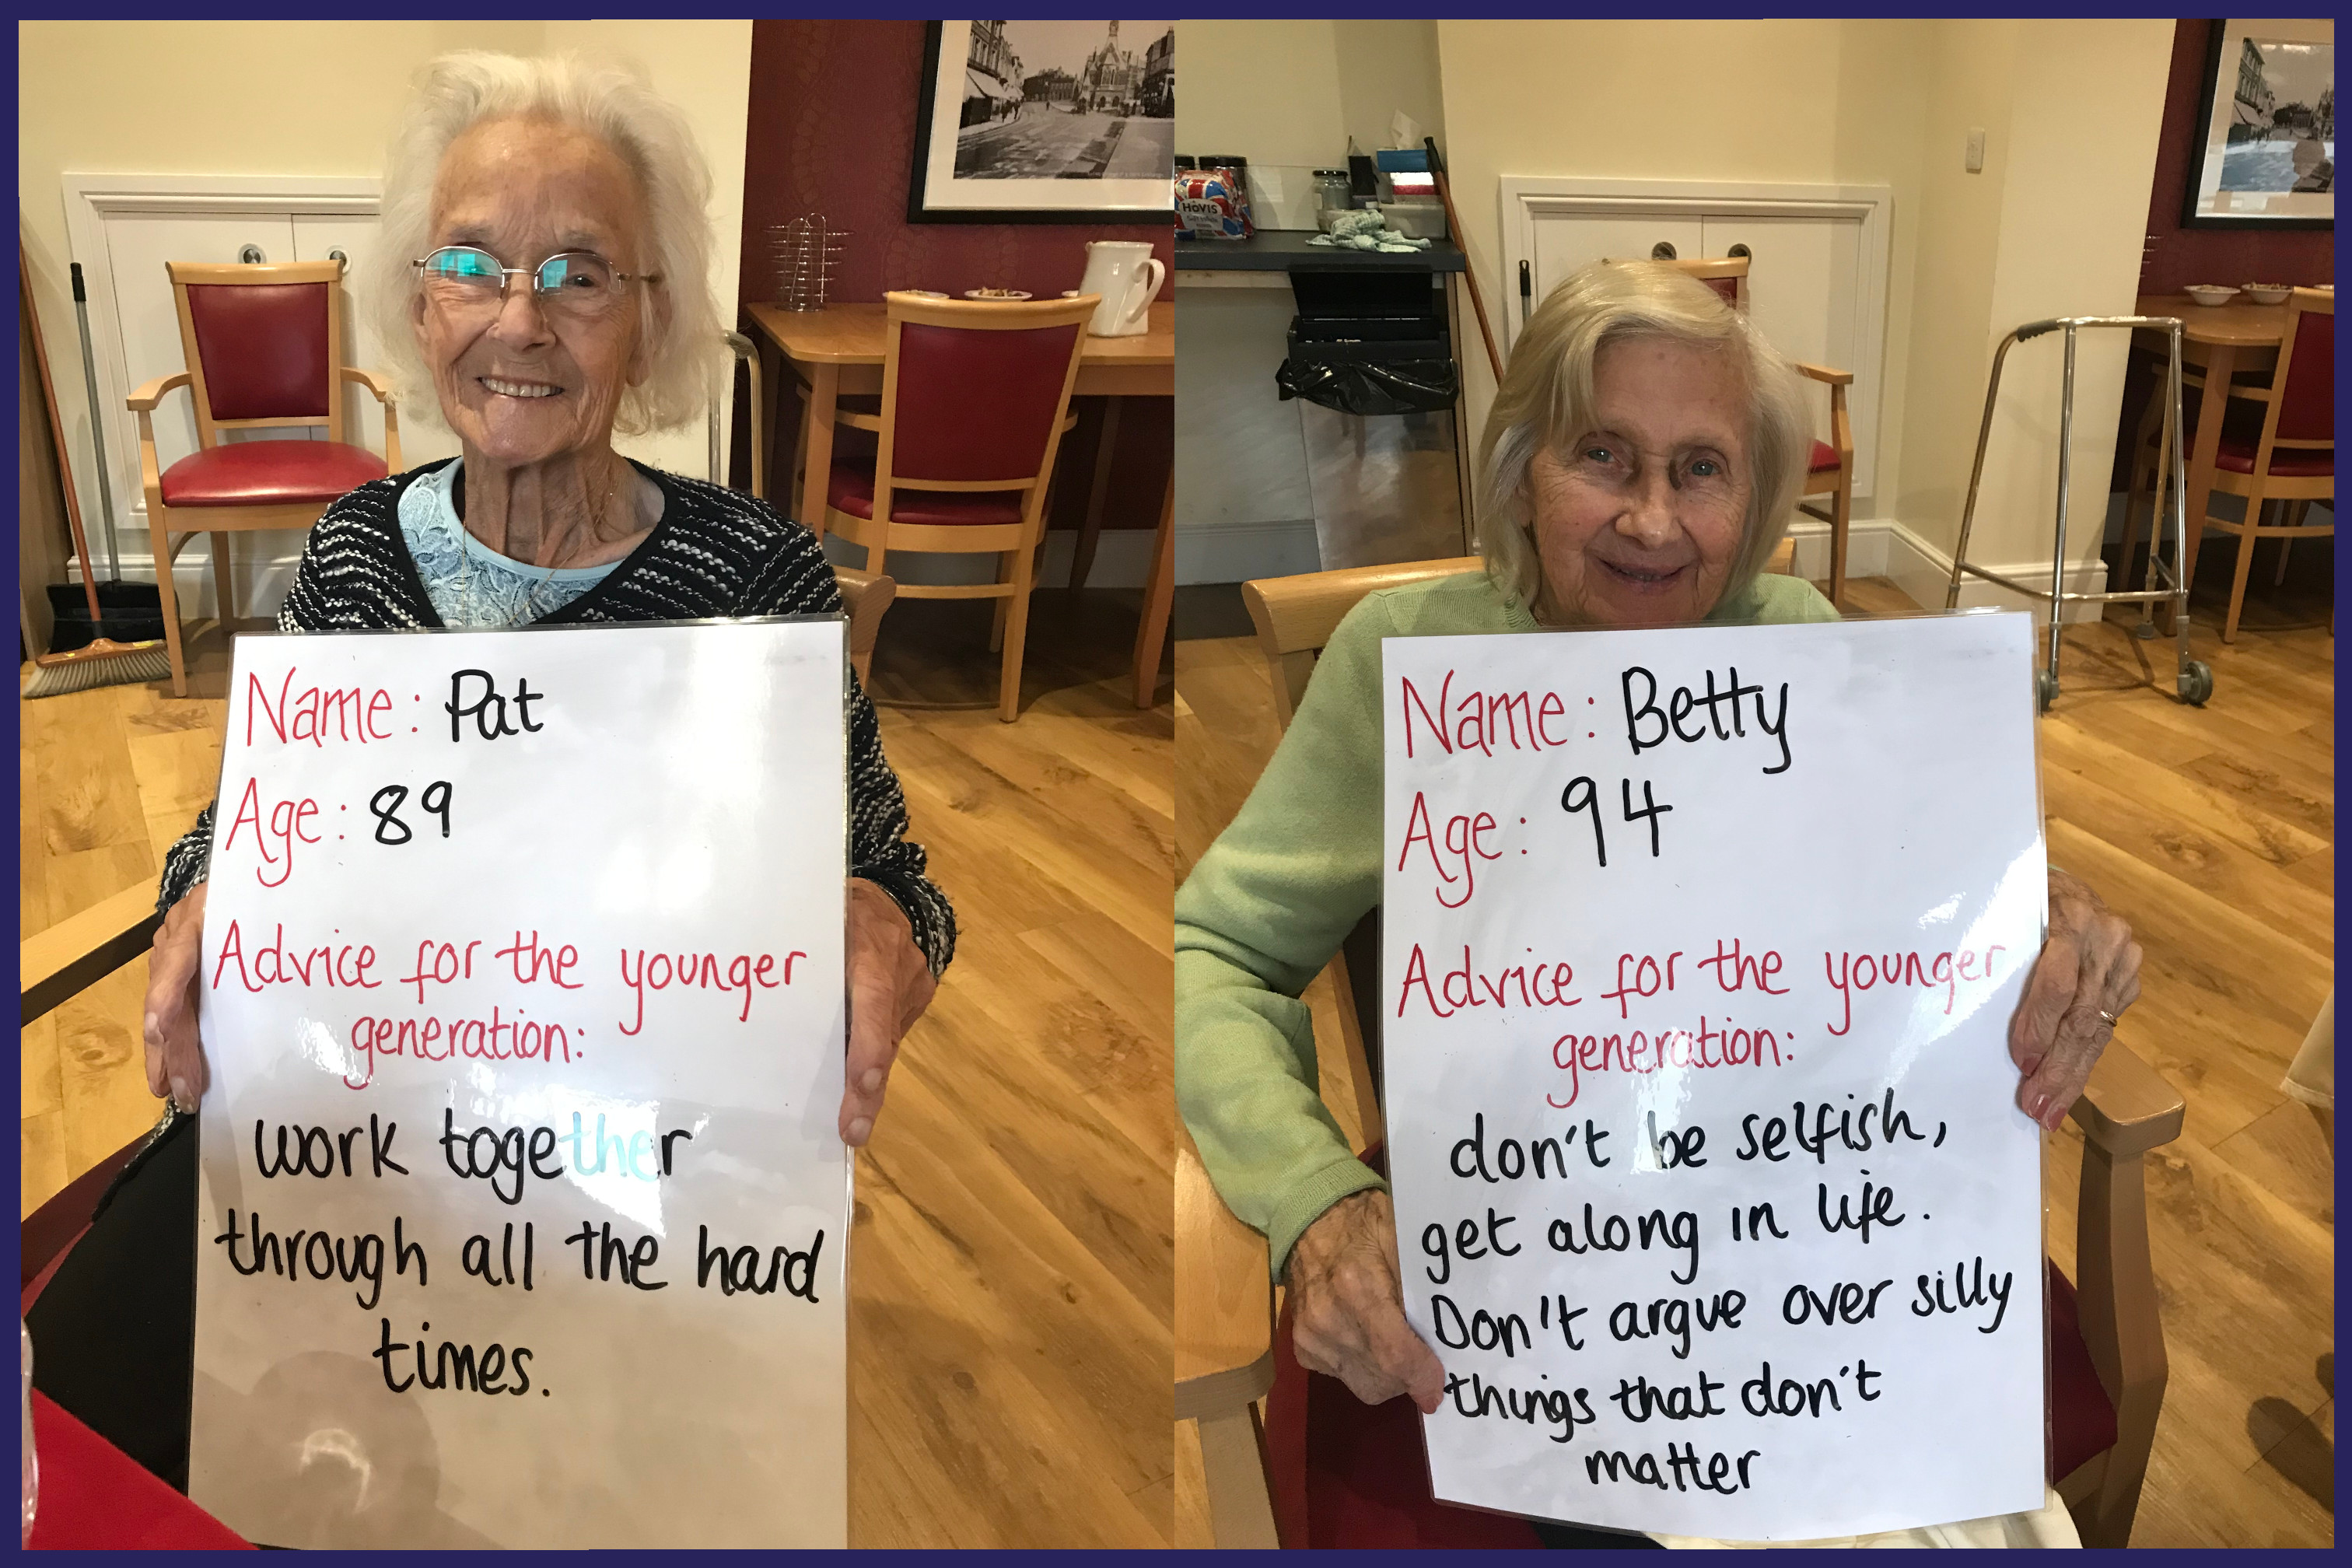 Pat and Betty give great advice to the younger generation